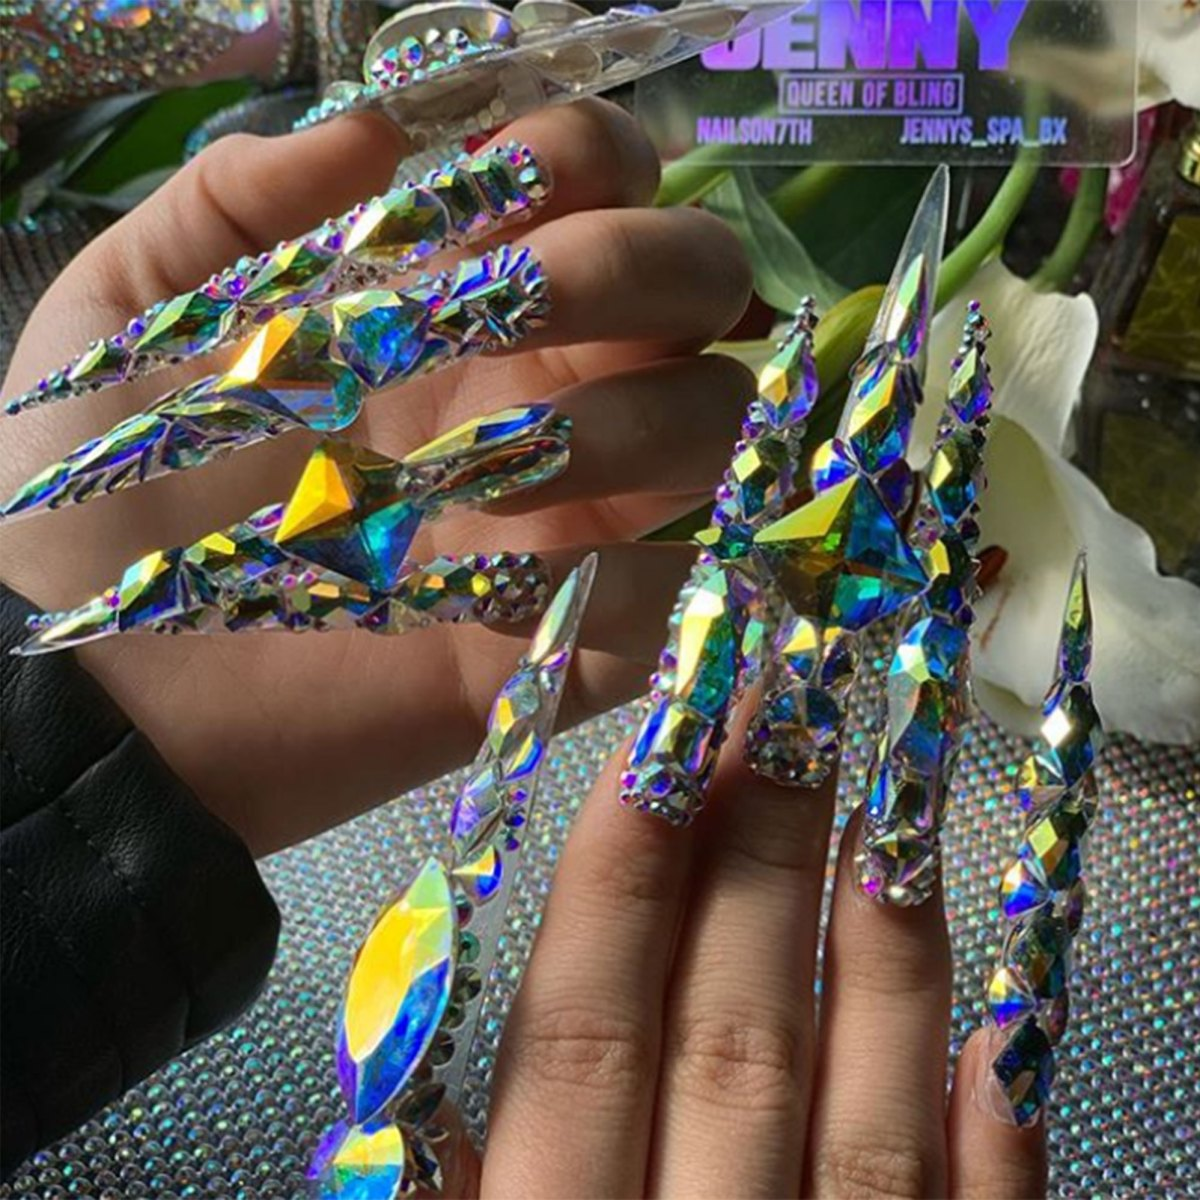 The Best Nail Art Instagram Influencers To Follow For Manicure Inspo